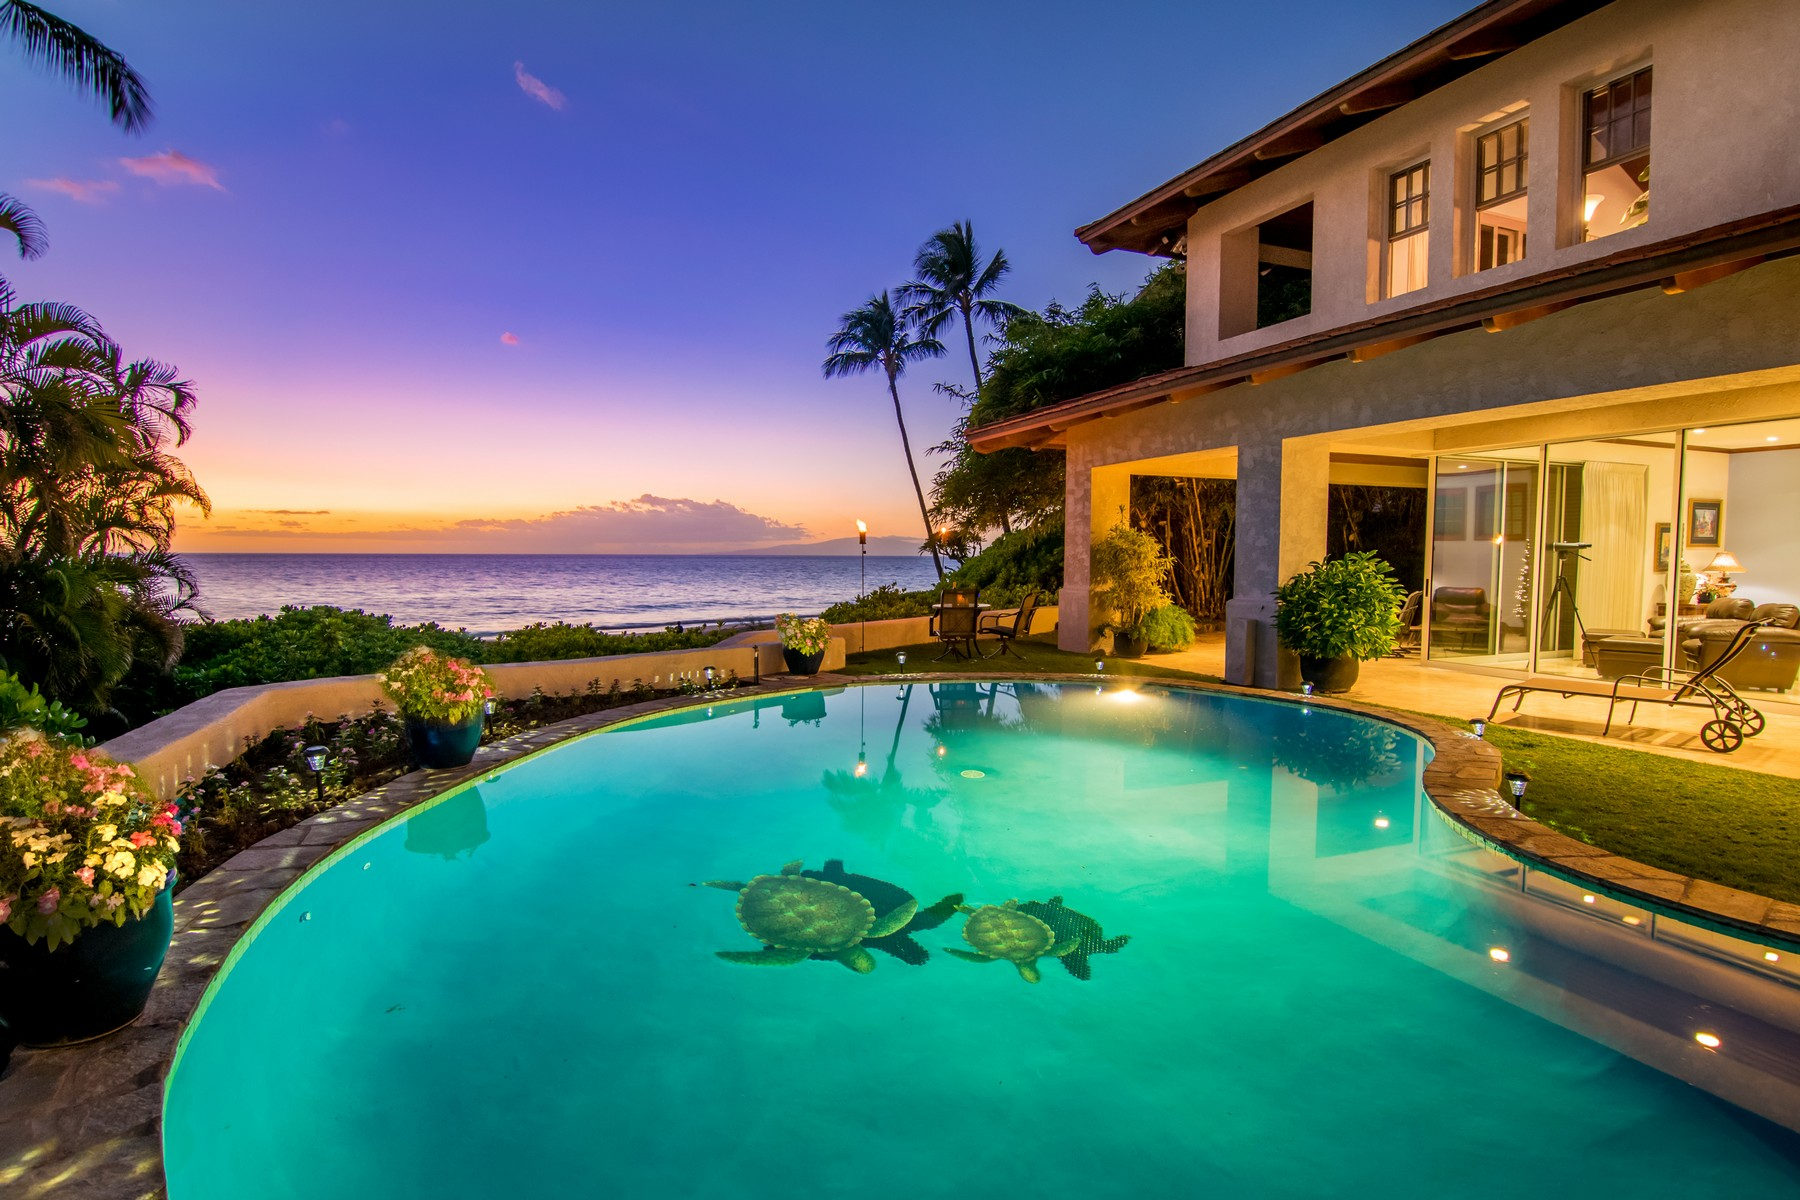 Casa Unifamiliar por un Venta en Elegant Oceanfront Estate On Maui's Finest Sandy Beach 3002 South Kihei Road Kihei, Hawaii 96753 Estados Unidos